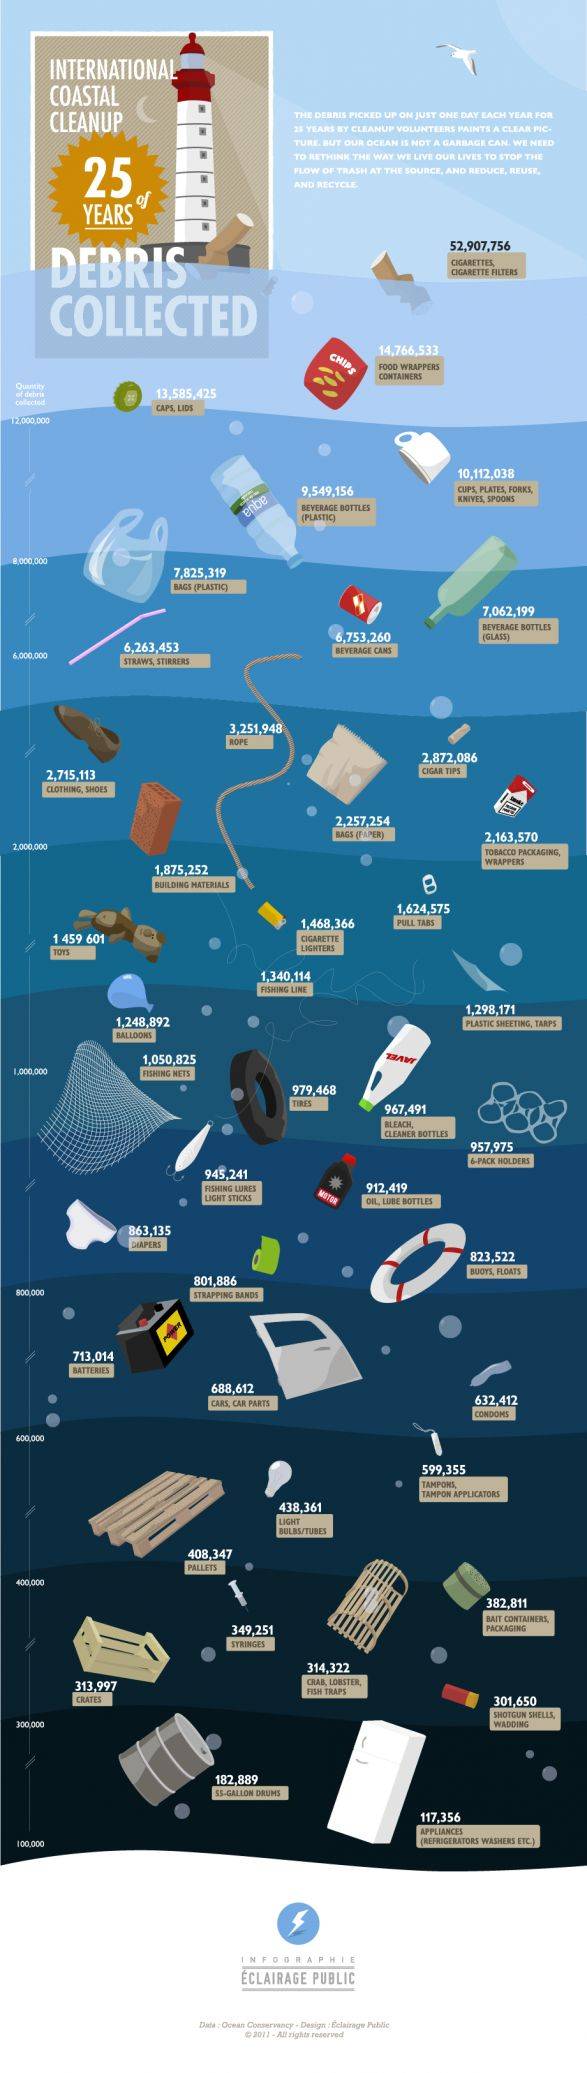 25 years of debris collected through the International Coastal Cleanup #oceans